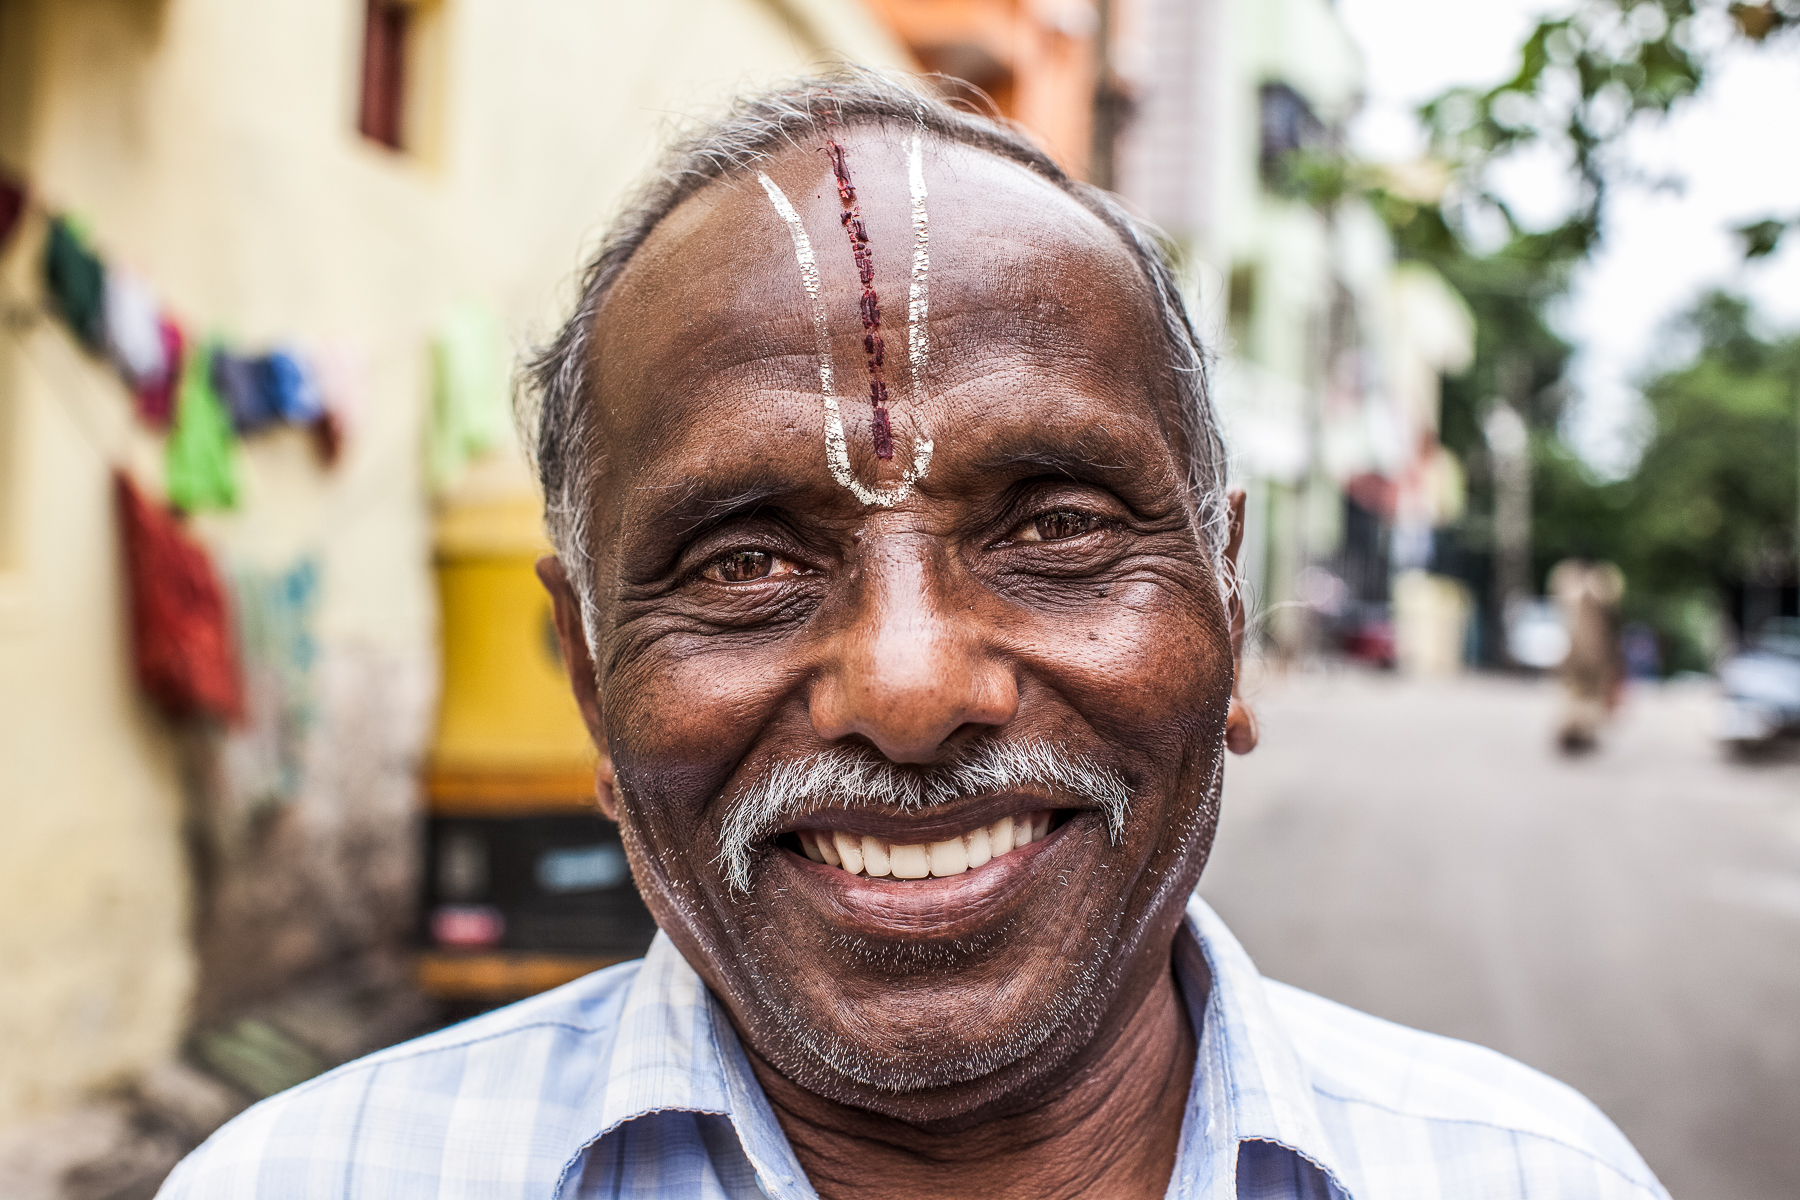 Portrait of Indian Man in  a City